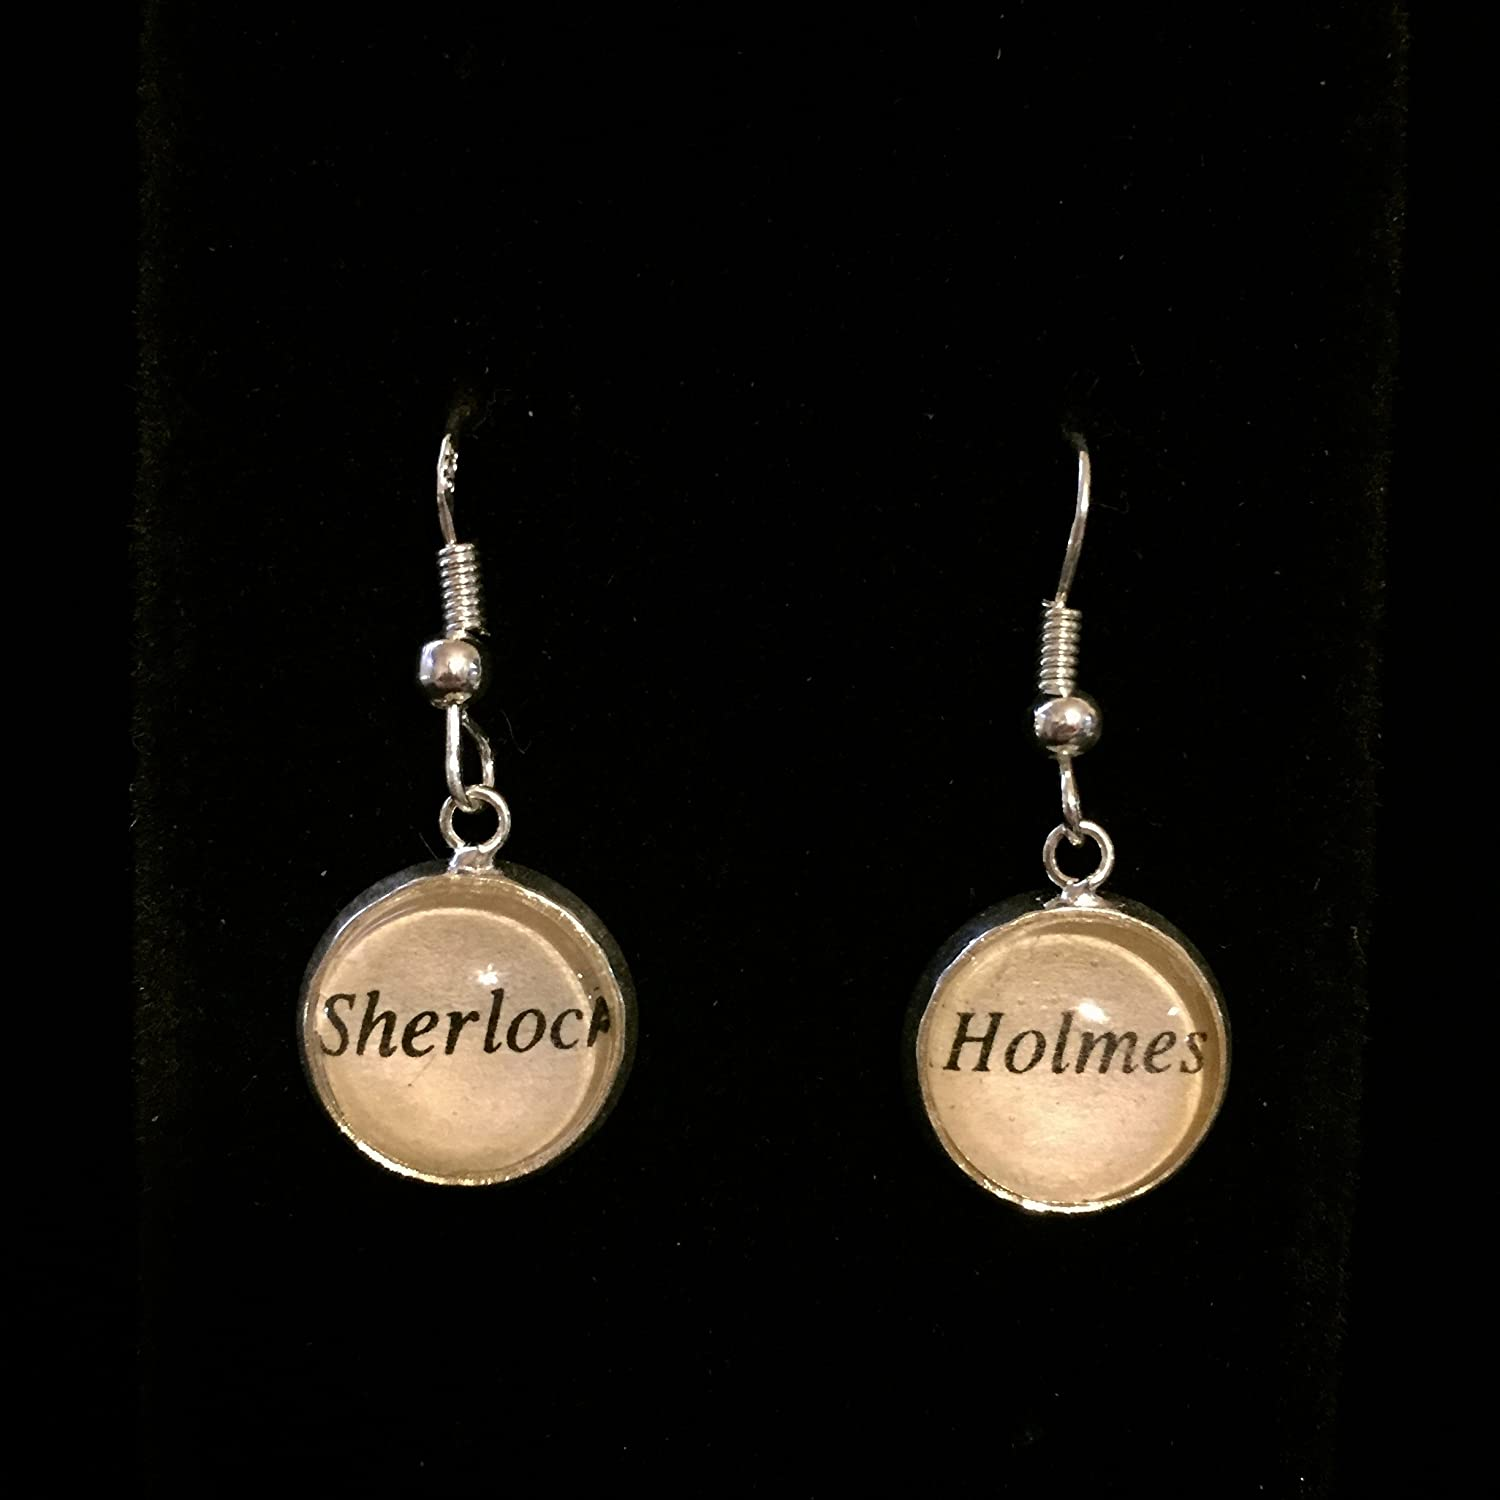 Sherlock Holmes Earrings with Sterling Silver Hooks